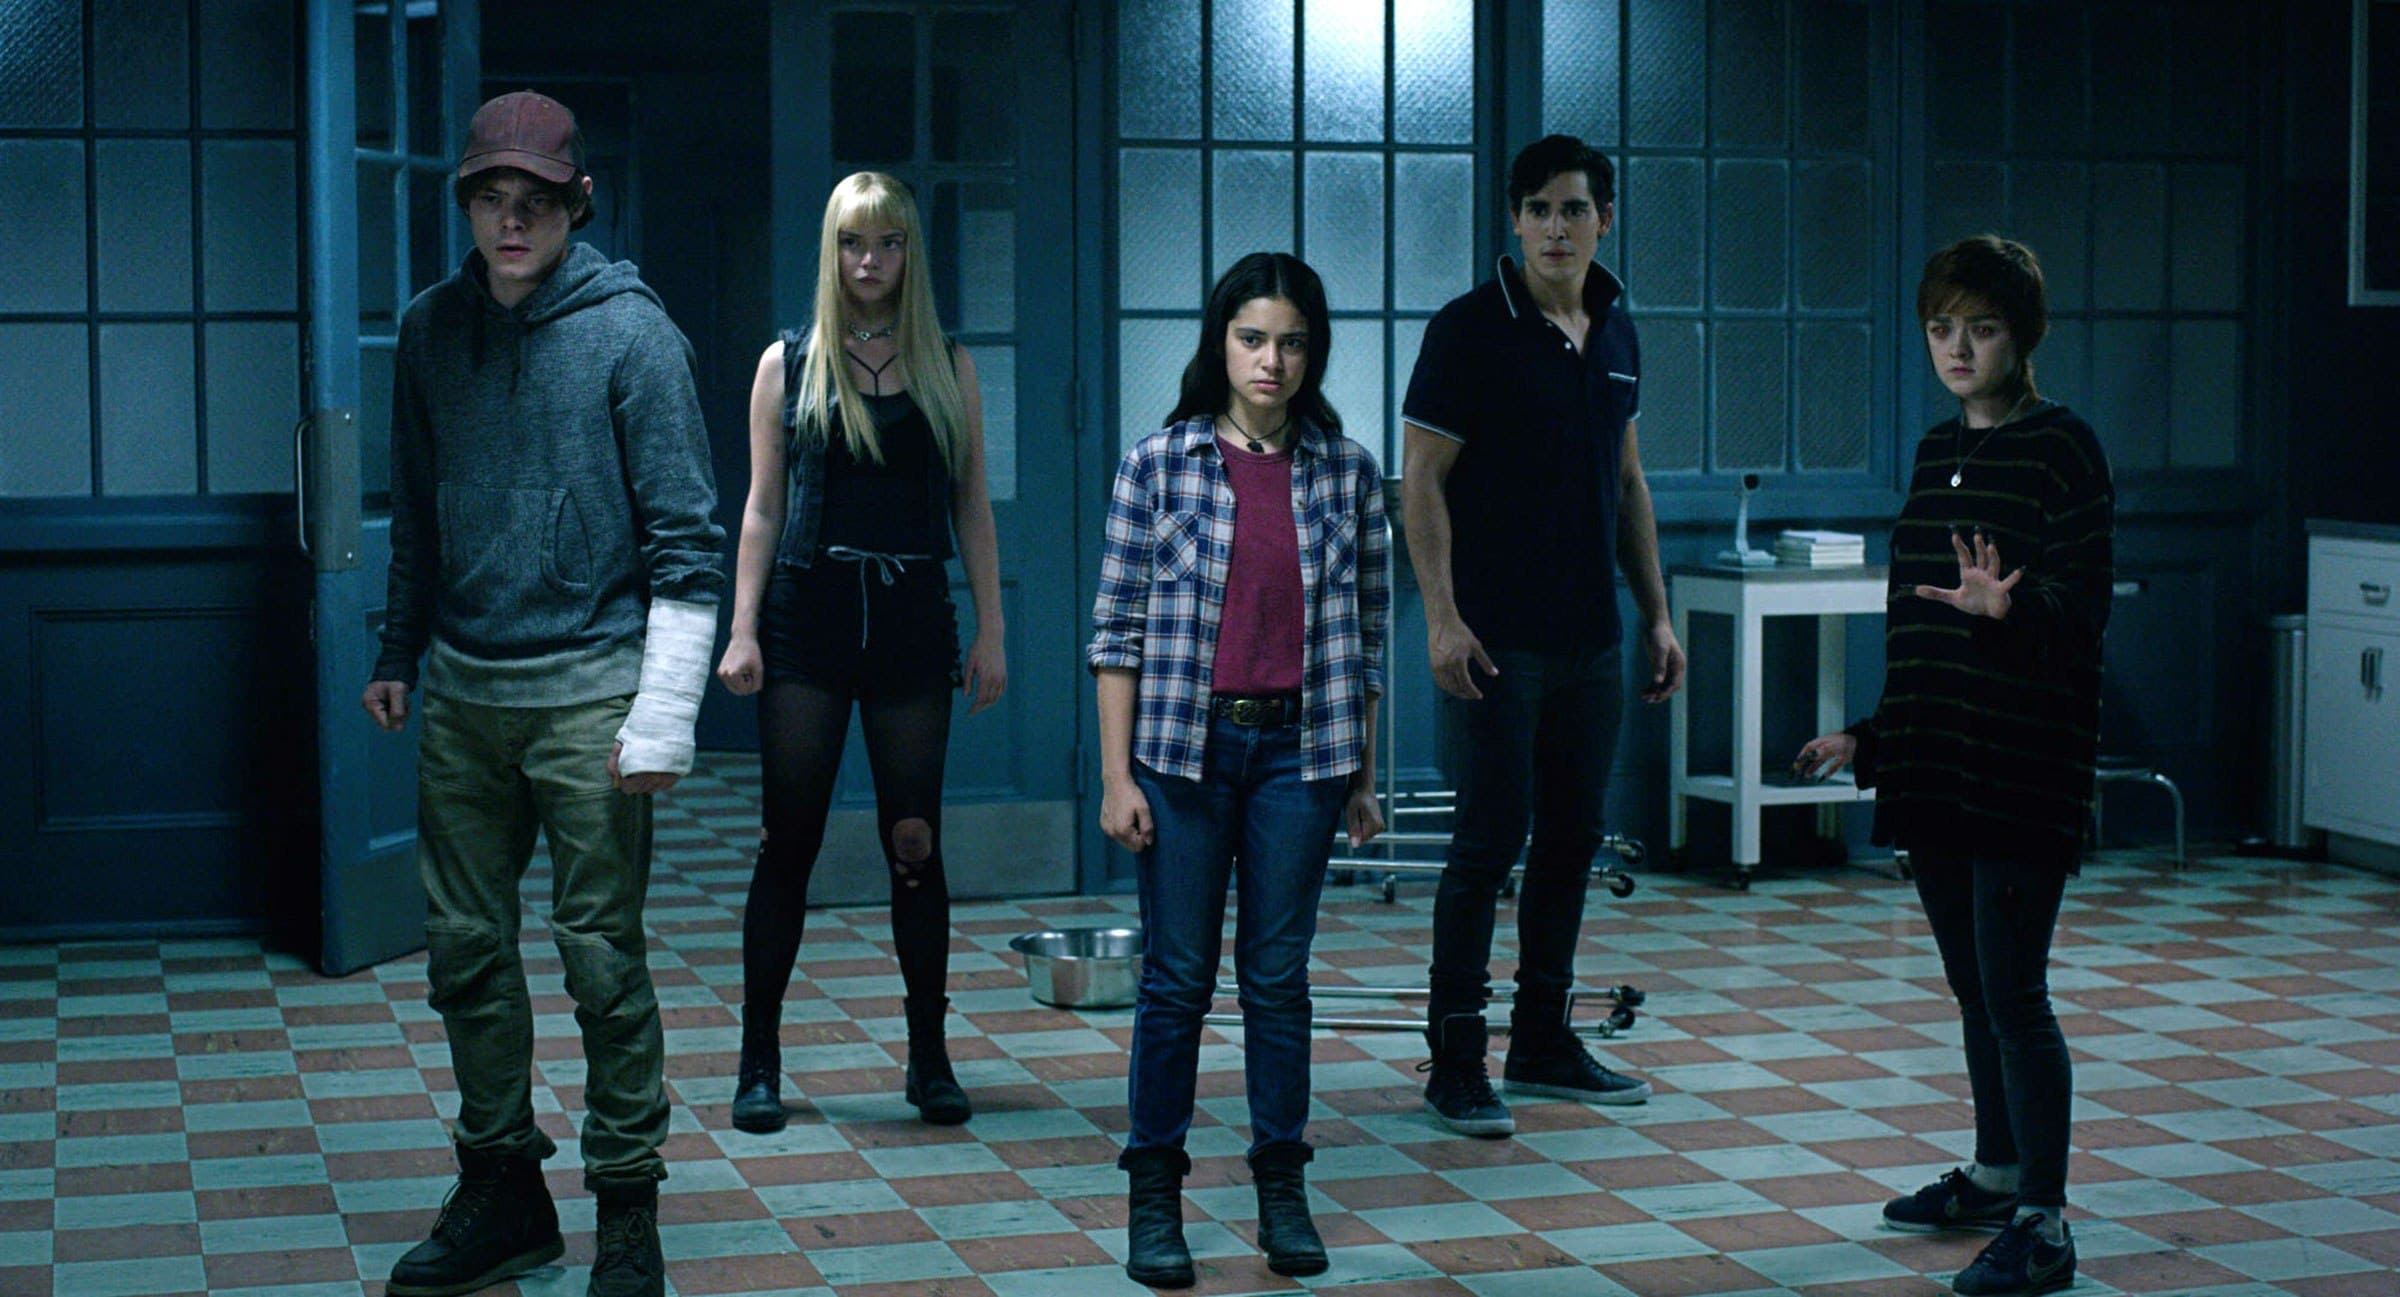 TRAILER: X-Men Spinoff 'The New Mutants' Features Latino & Native American Superheroes